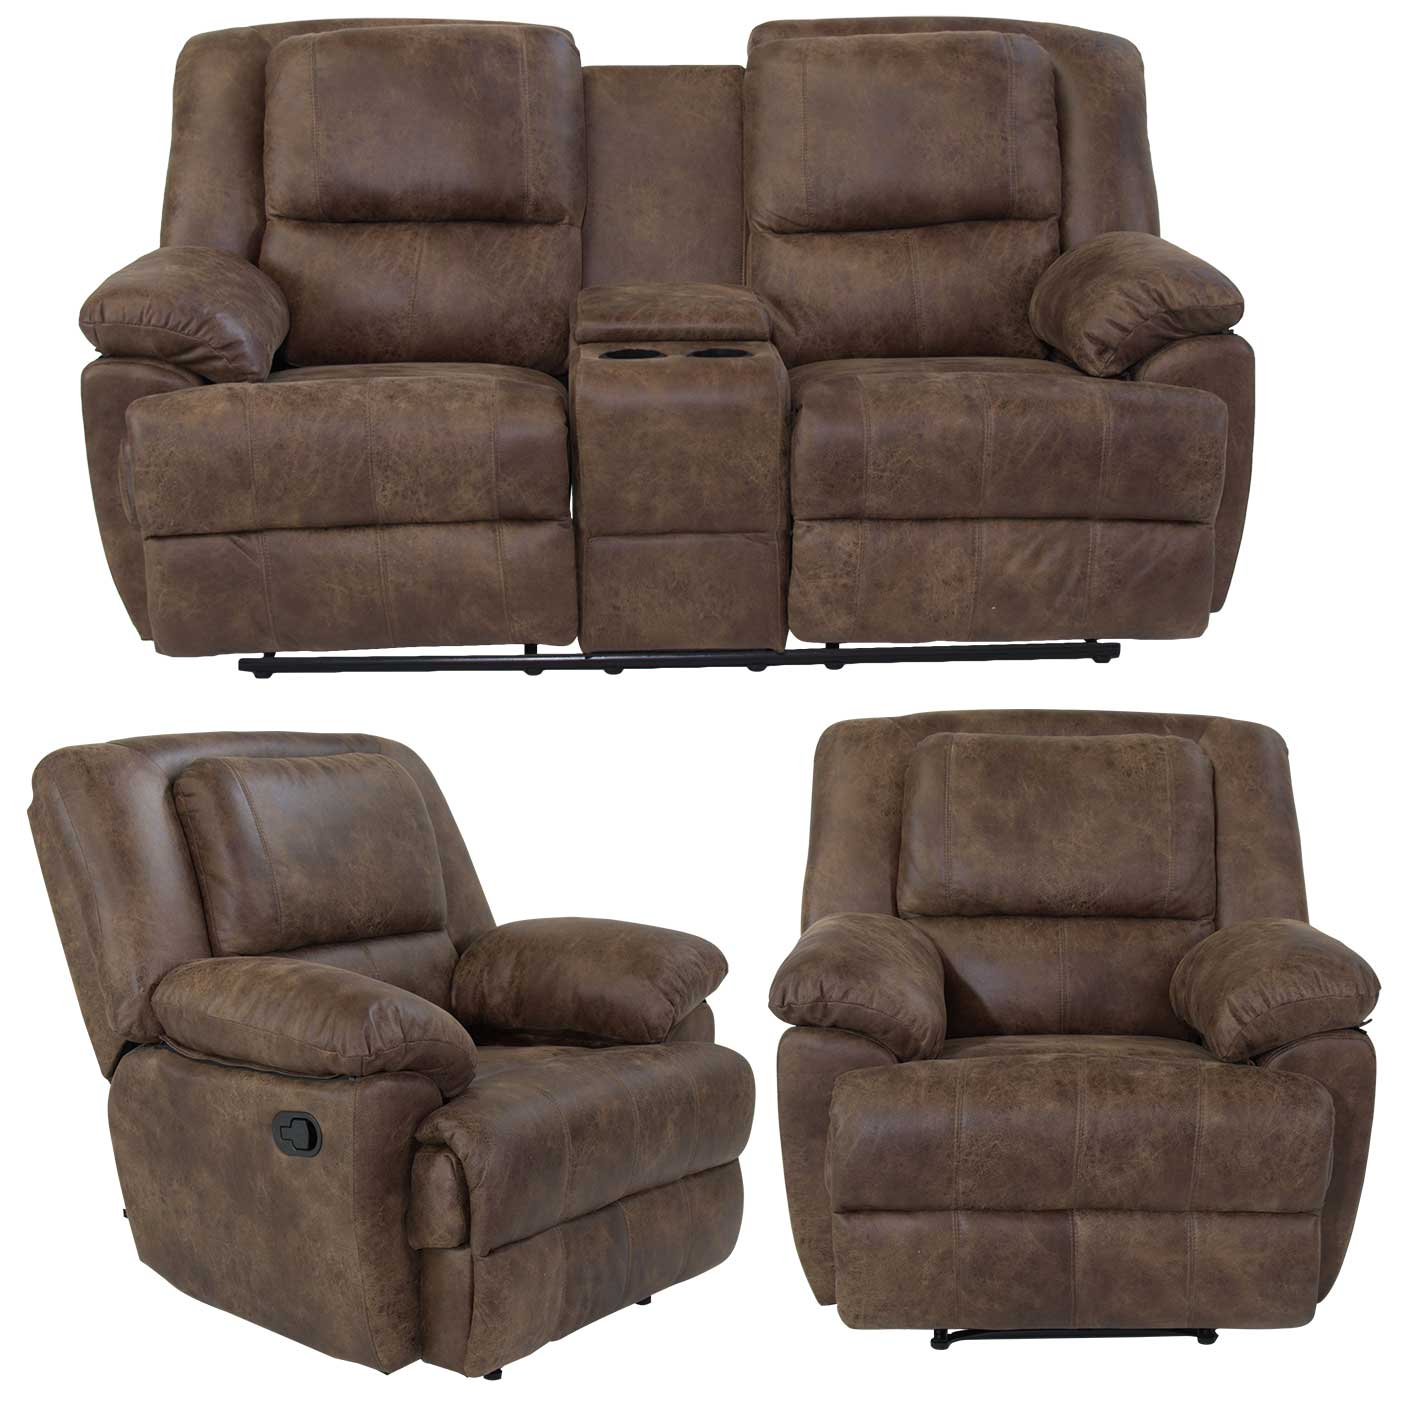 Recliner Lounge Lea008 Recliner Lounge Suite Furniture Liquidation Warehouse